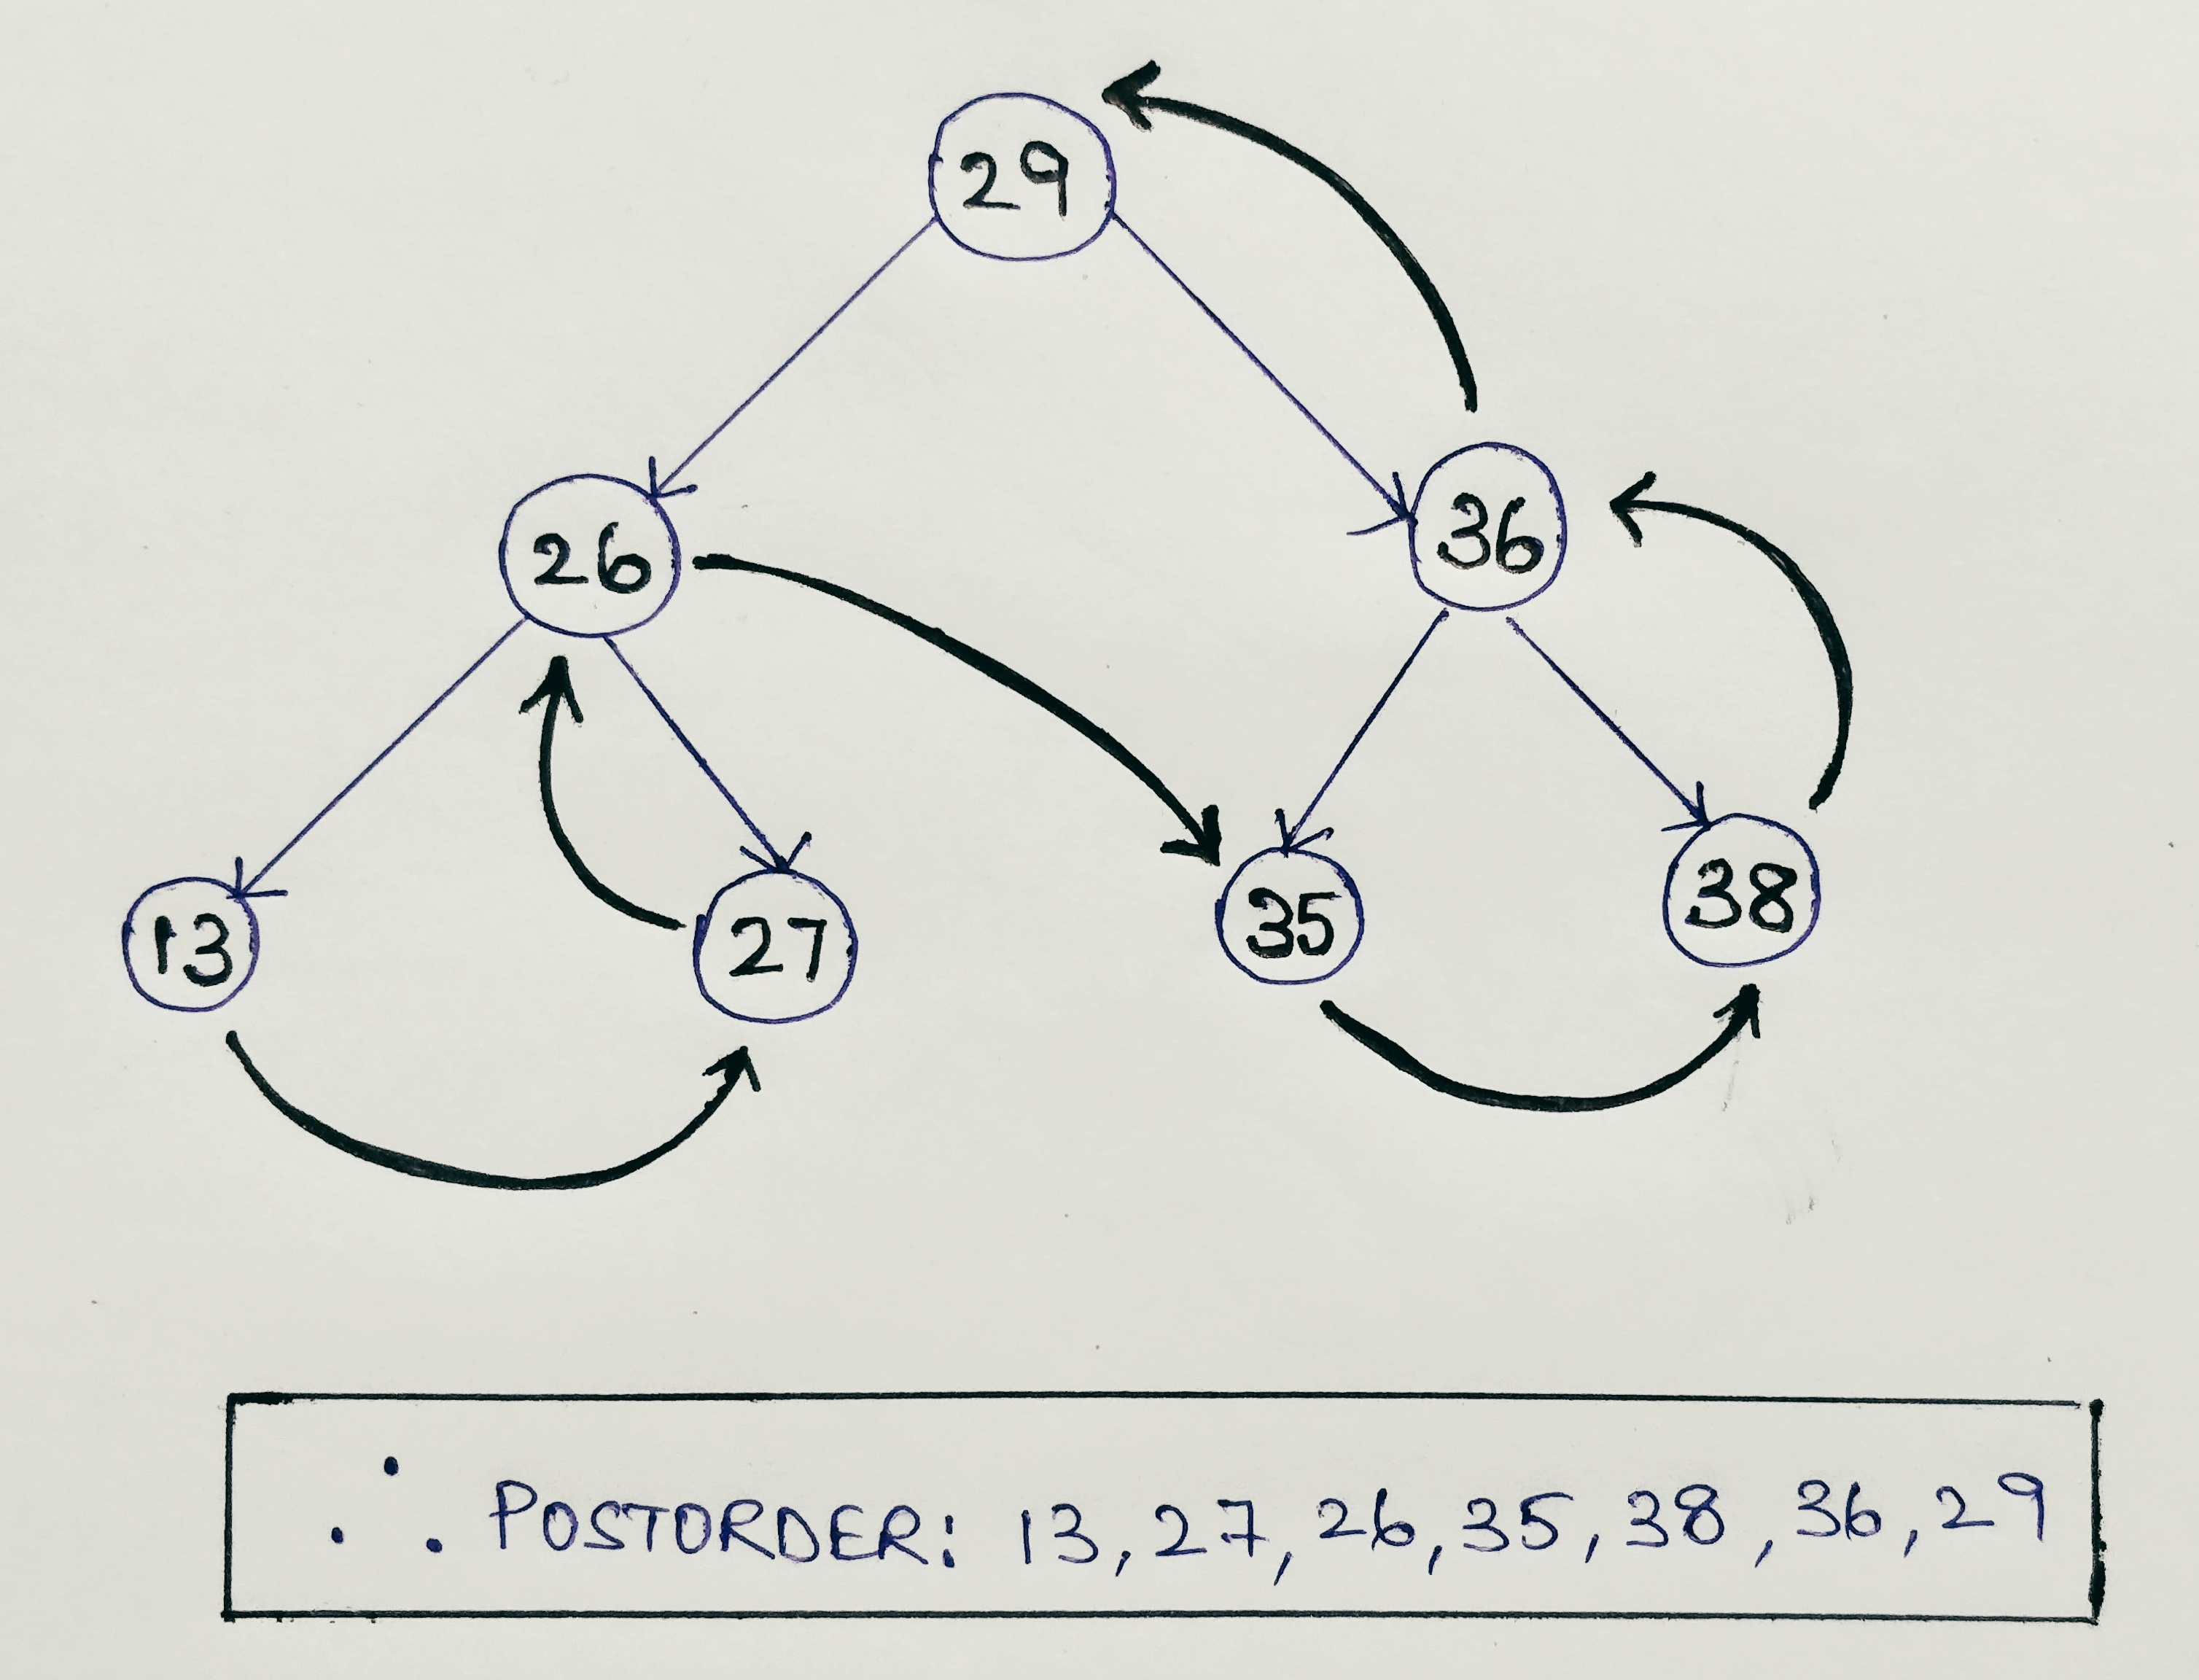 Postorder tree Traversal using Recursion in Java